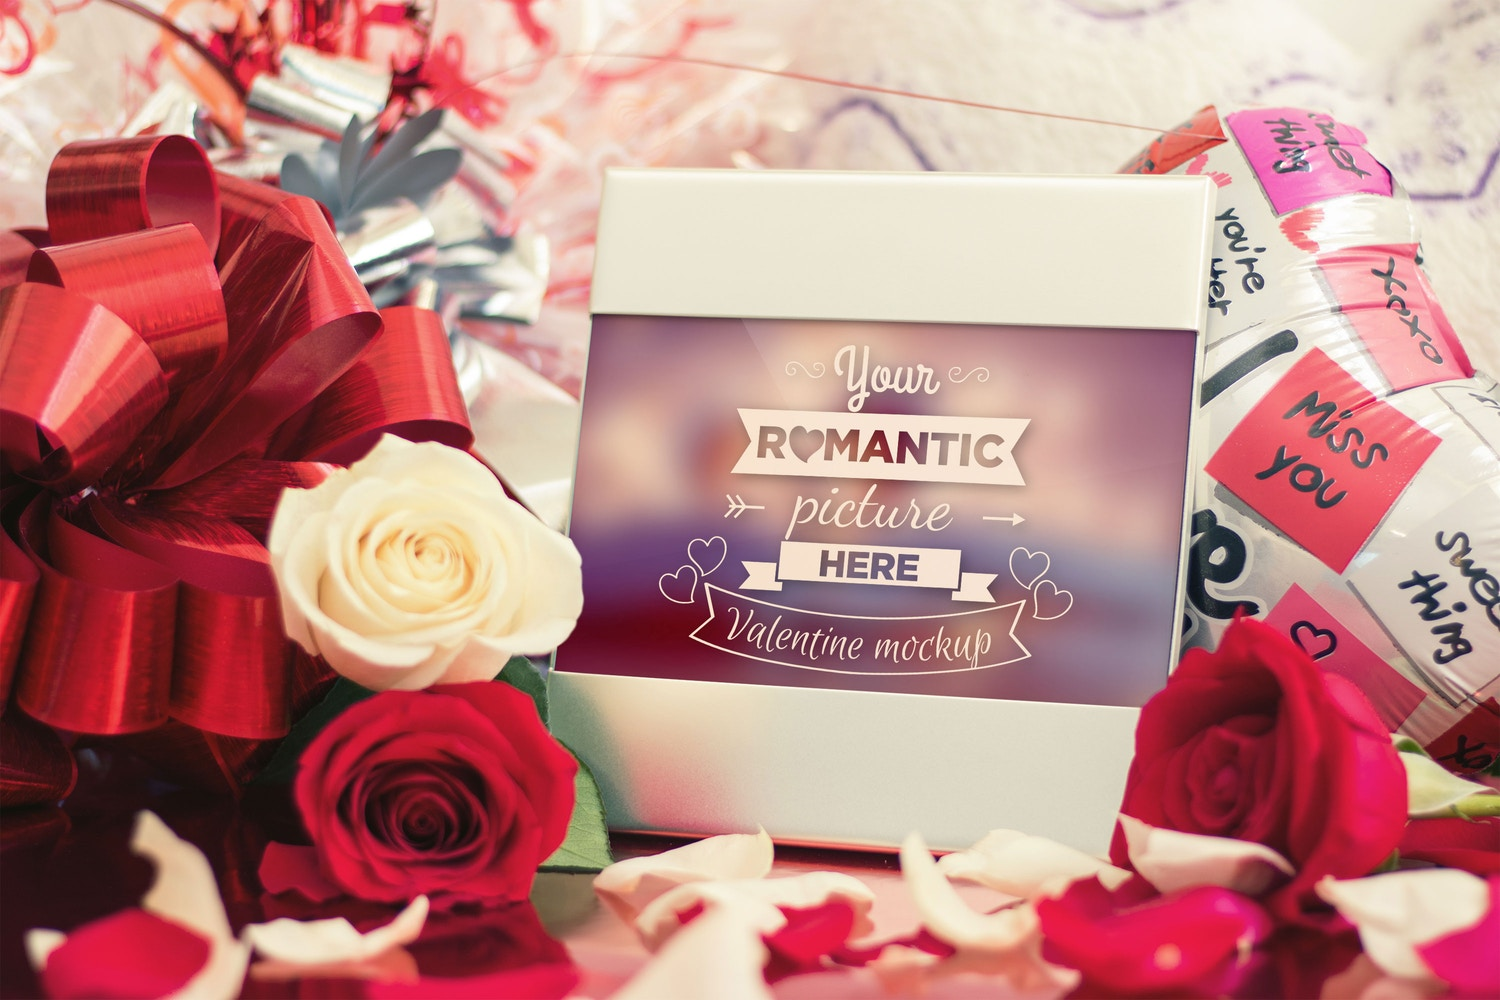 Valentine Picture Portrait Mockup 01 by Eru  on Original Mockups